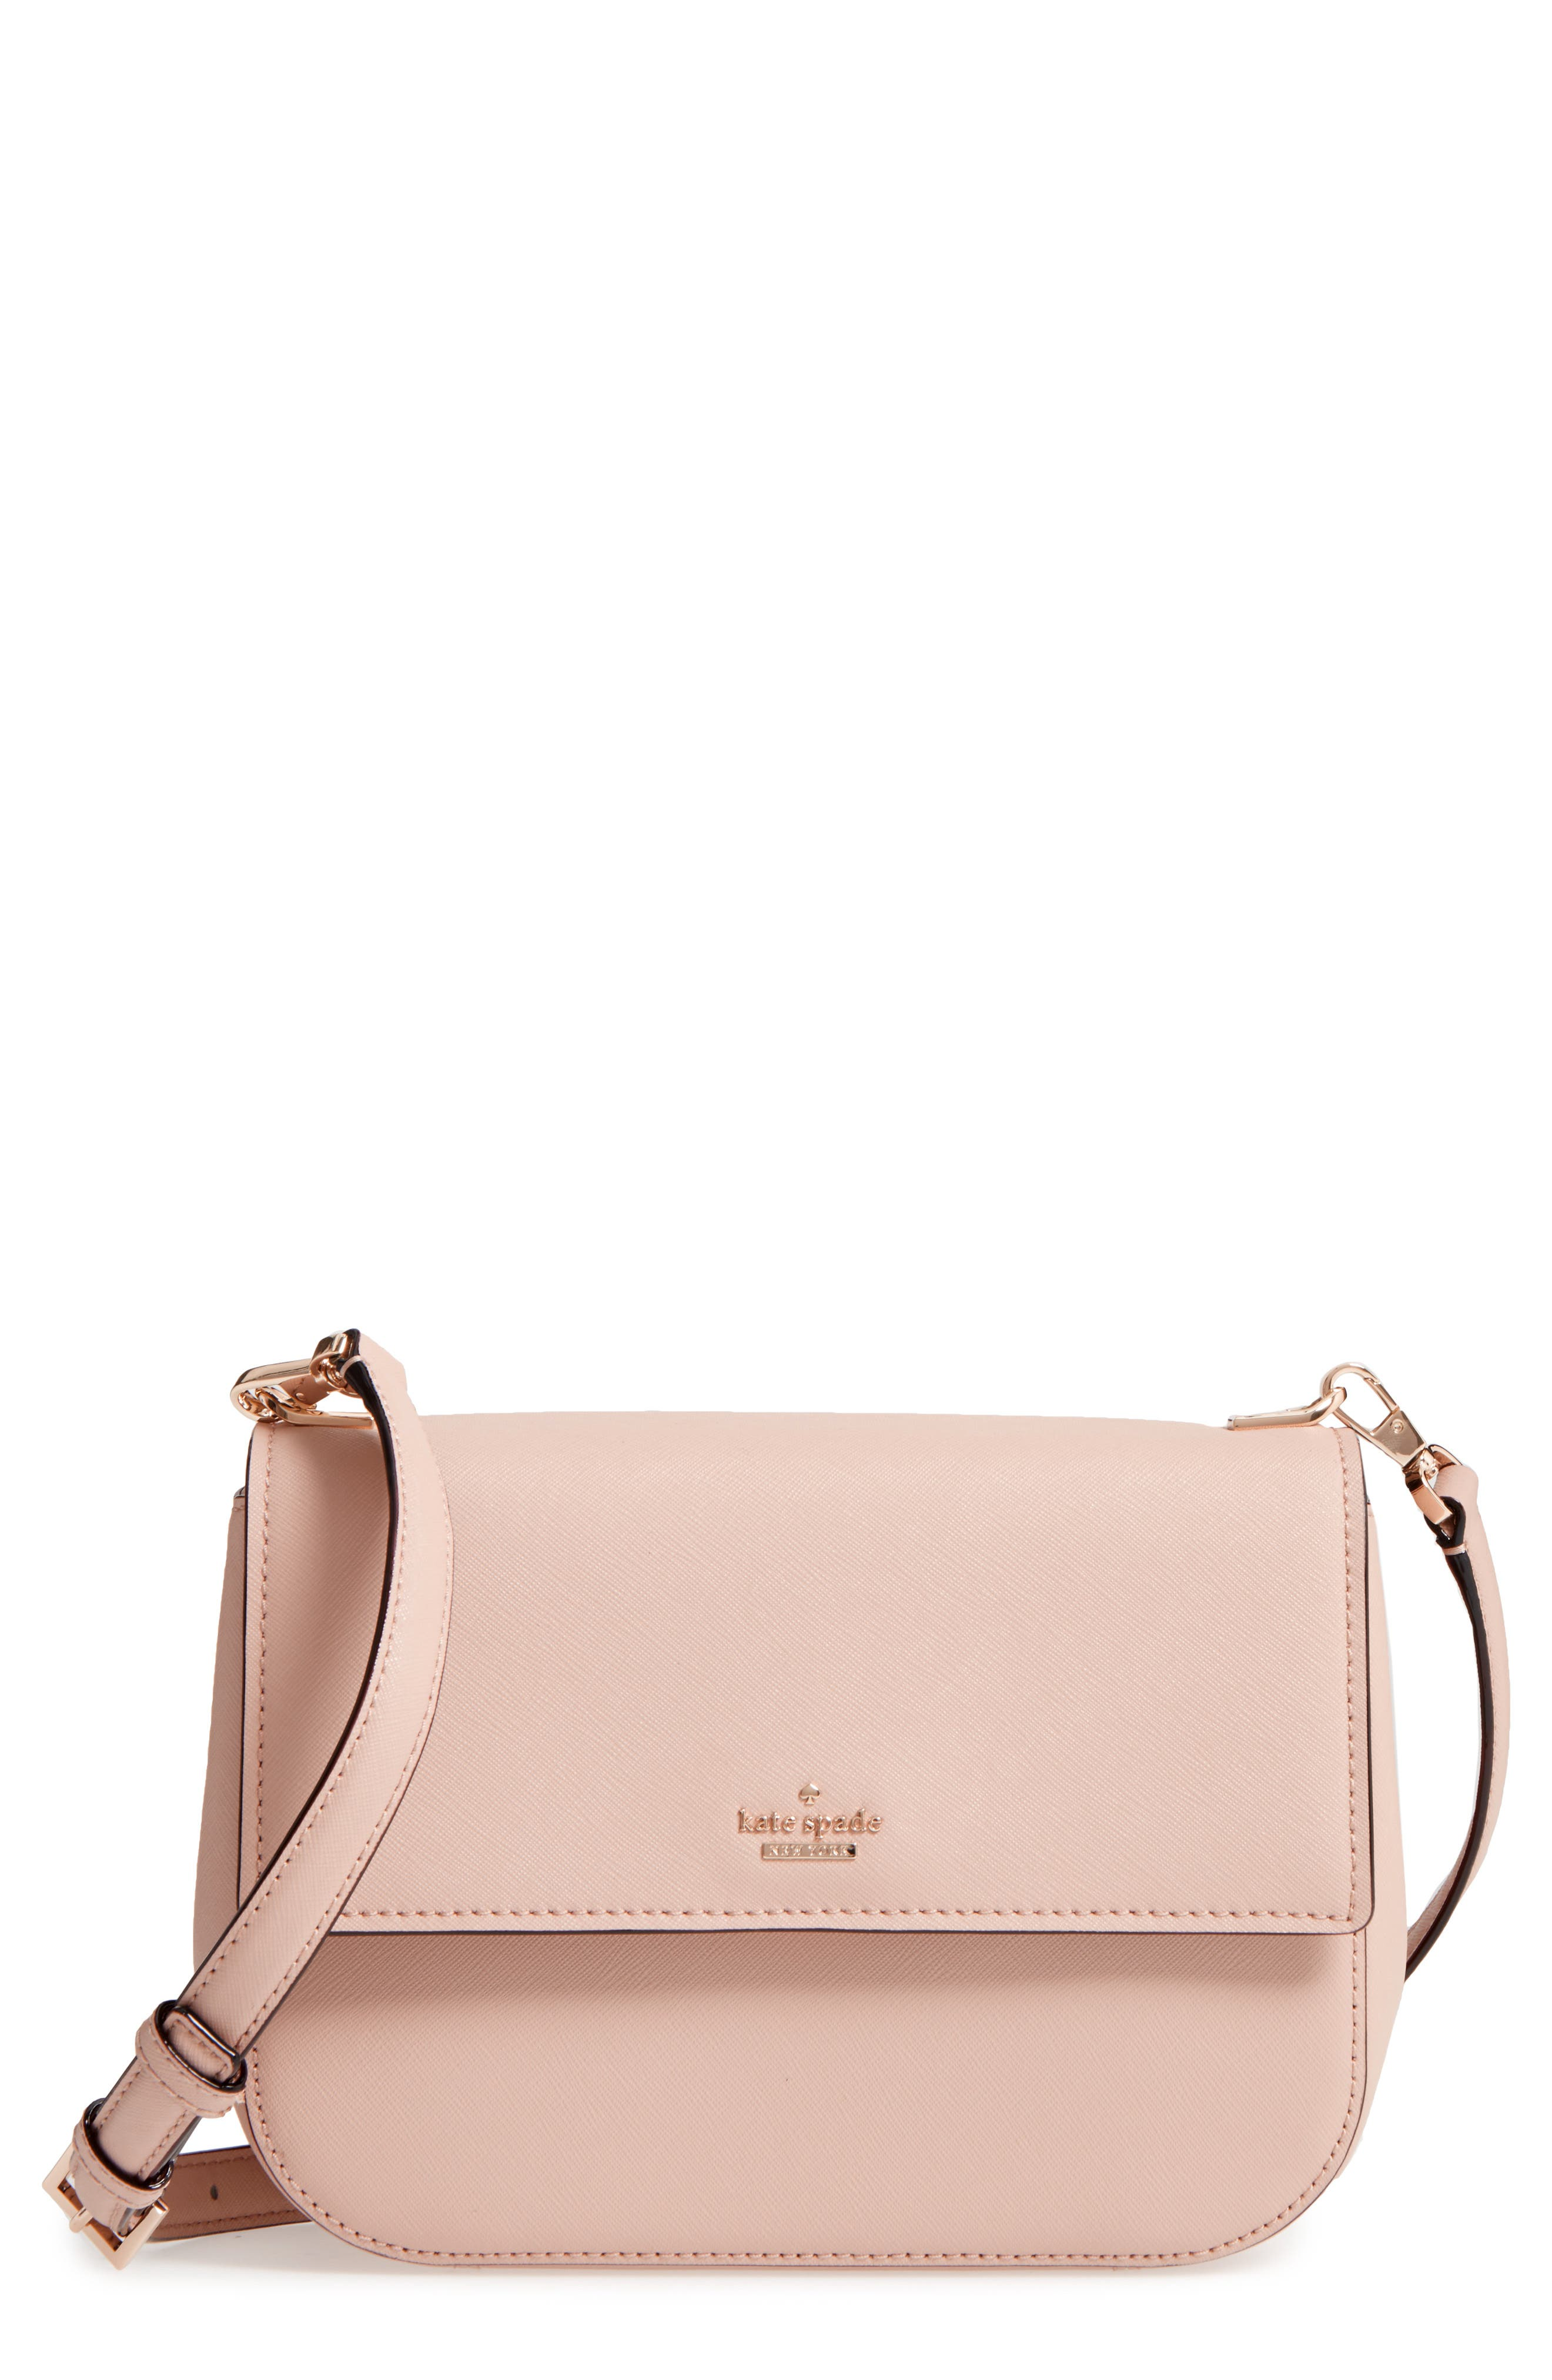 kate spade new york cameron street dotty crossbody bag